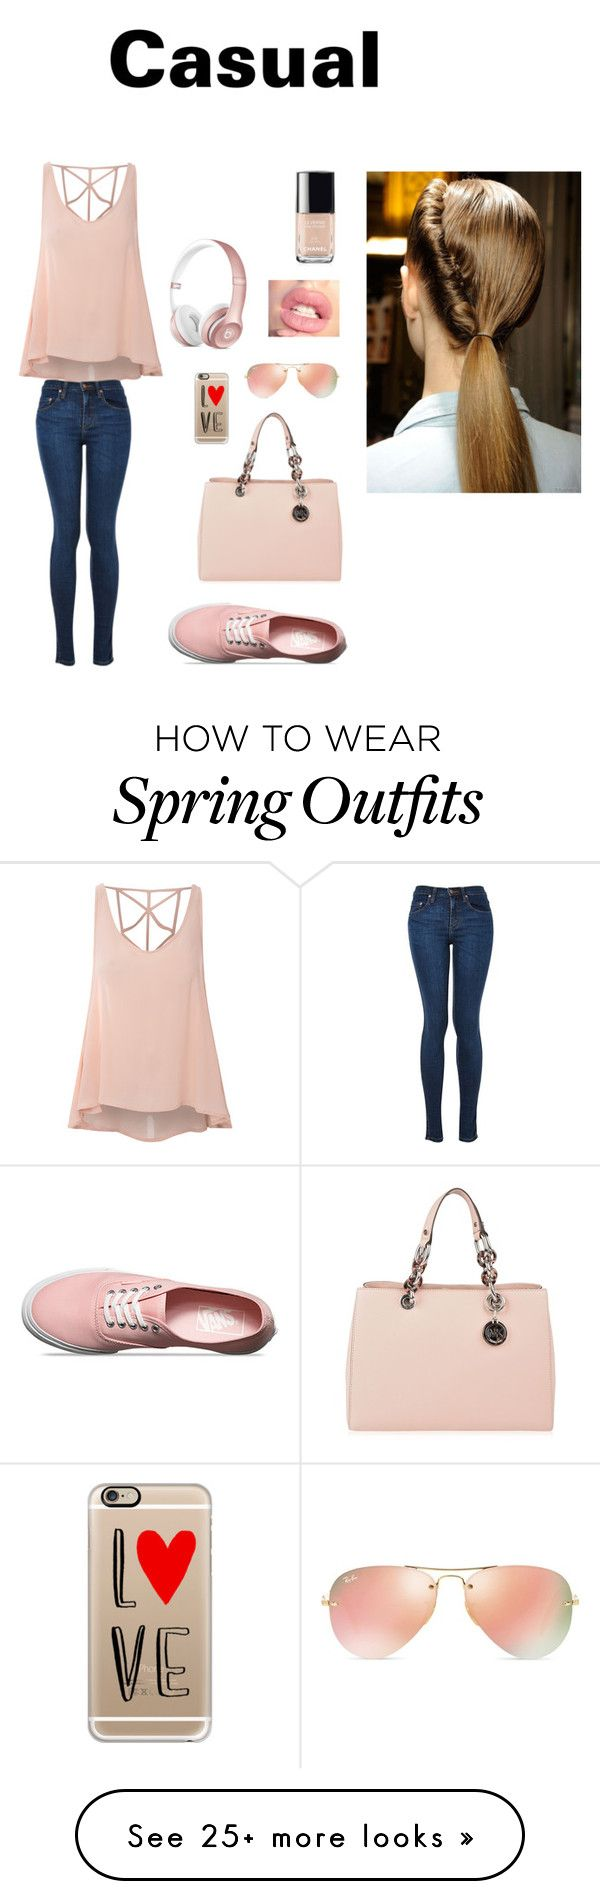 """Casual Outfit"" by manahil21 on Polyvore featuring Glamorous, Vans, MICHAEL Michael Kors, Casetify, Ray-Ban, Chanel, women's clothing, women, female and woman"